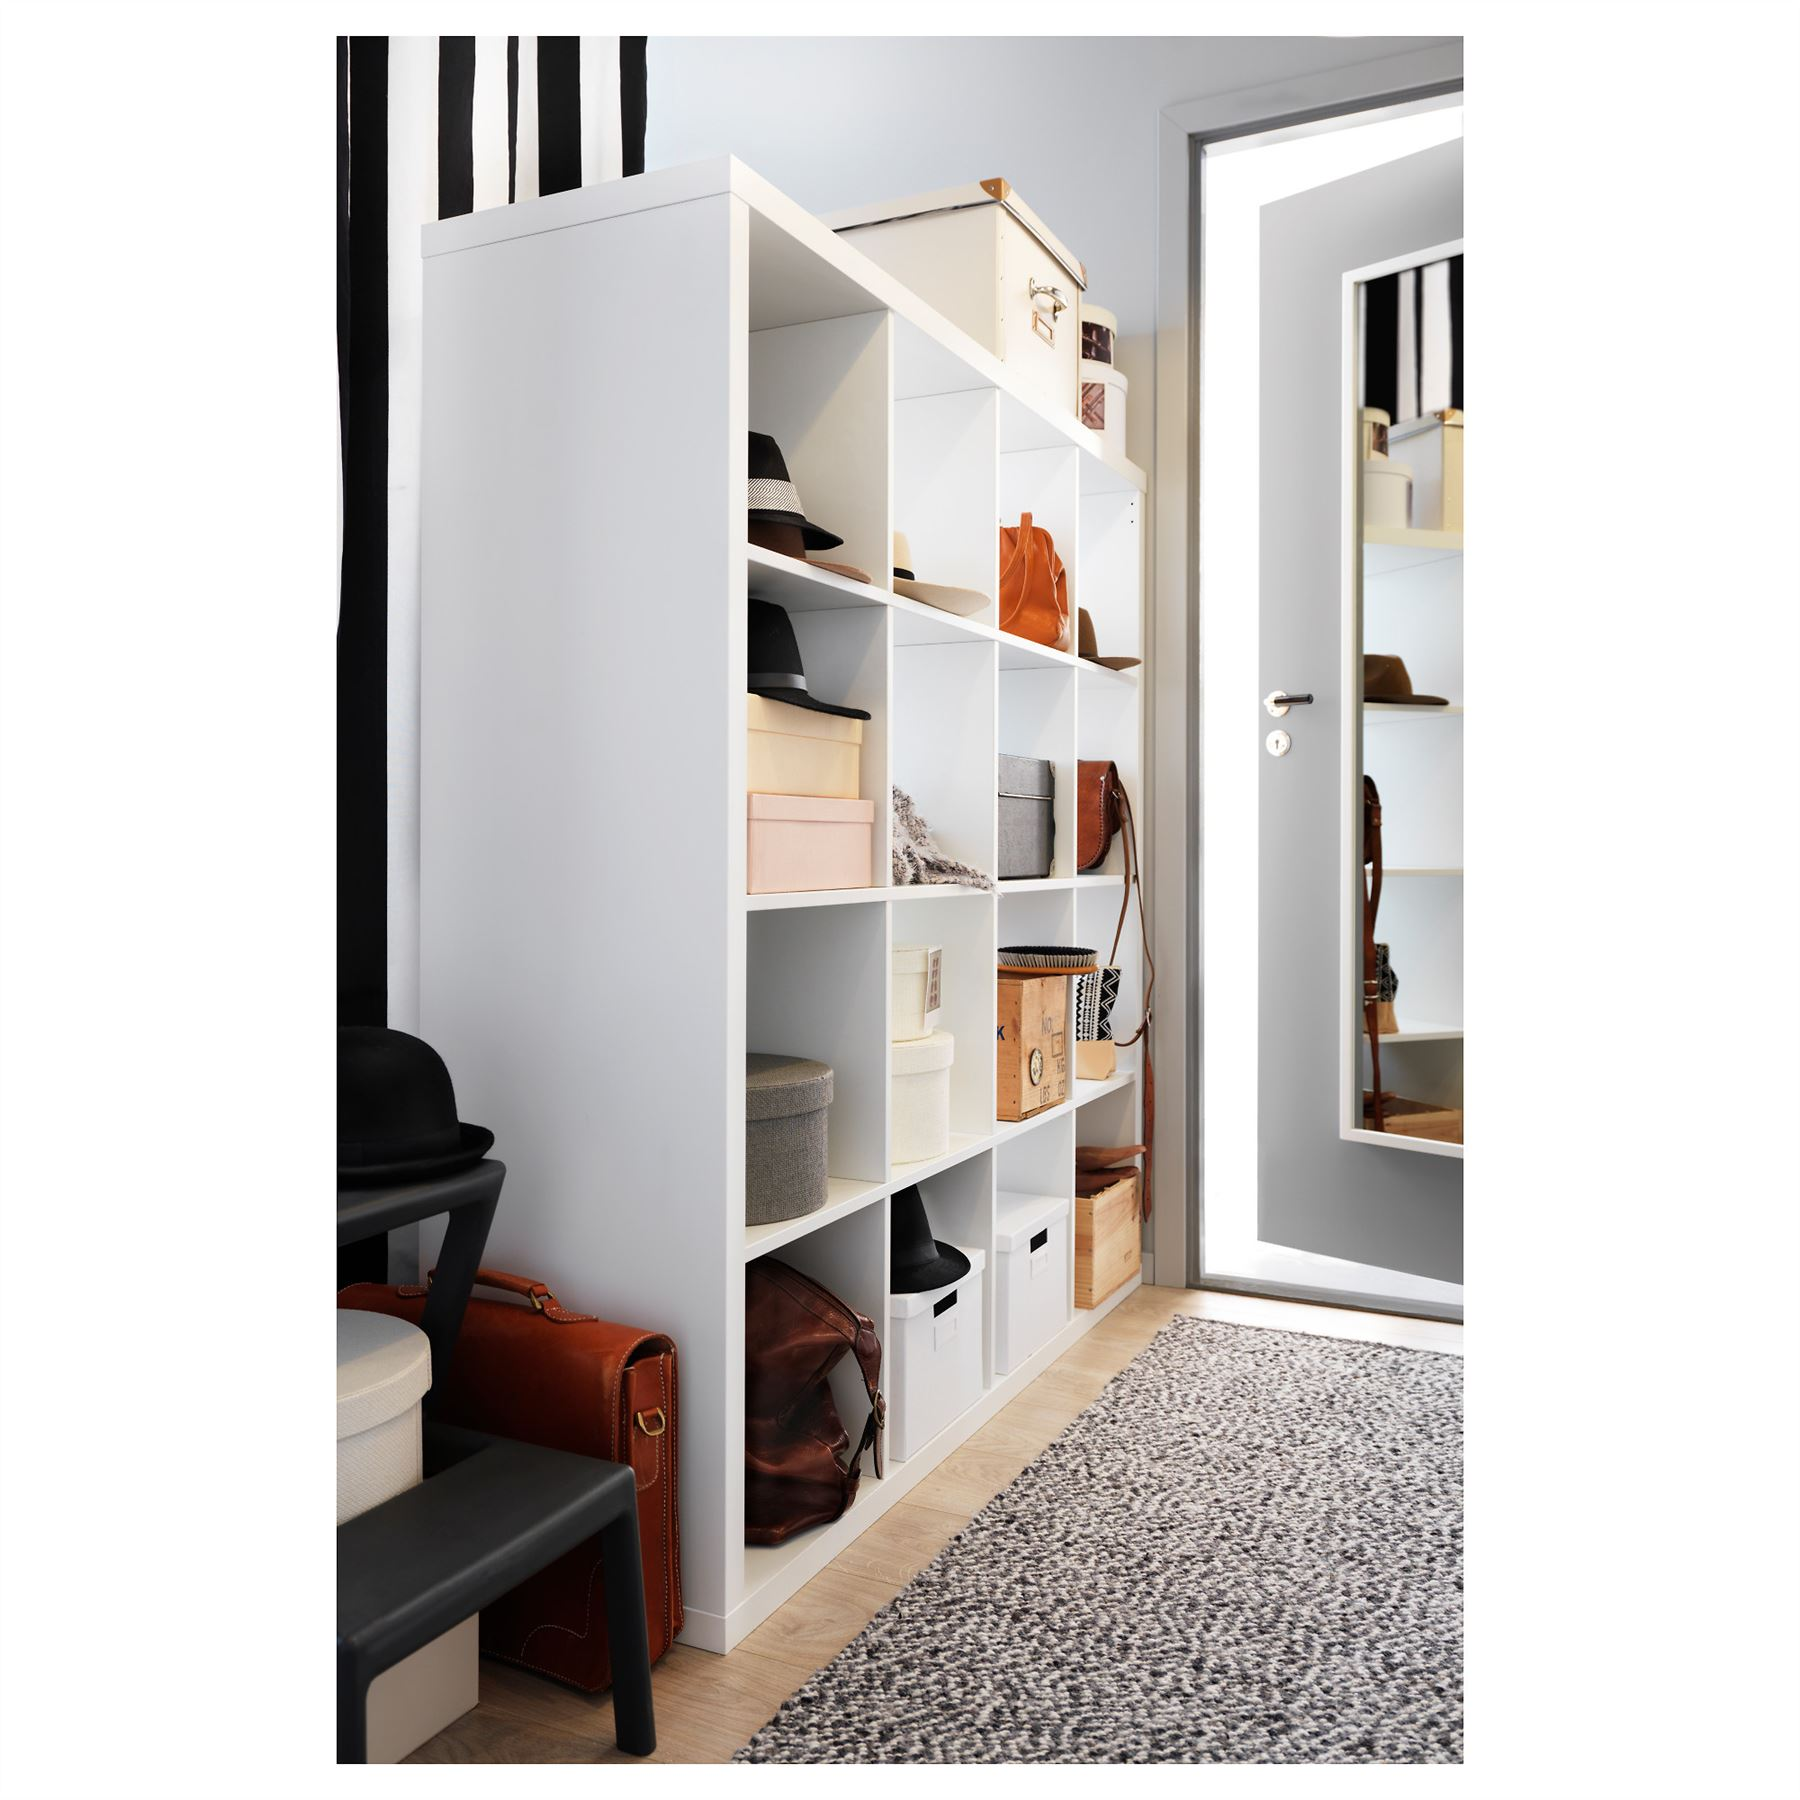 Ikea kallax 16 cube storage bookcase square shelving unit for Ikea box shelf unit